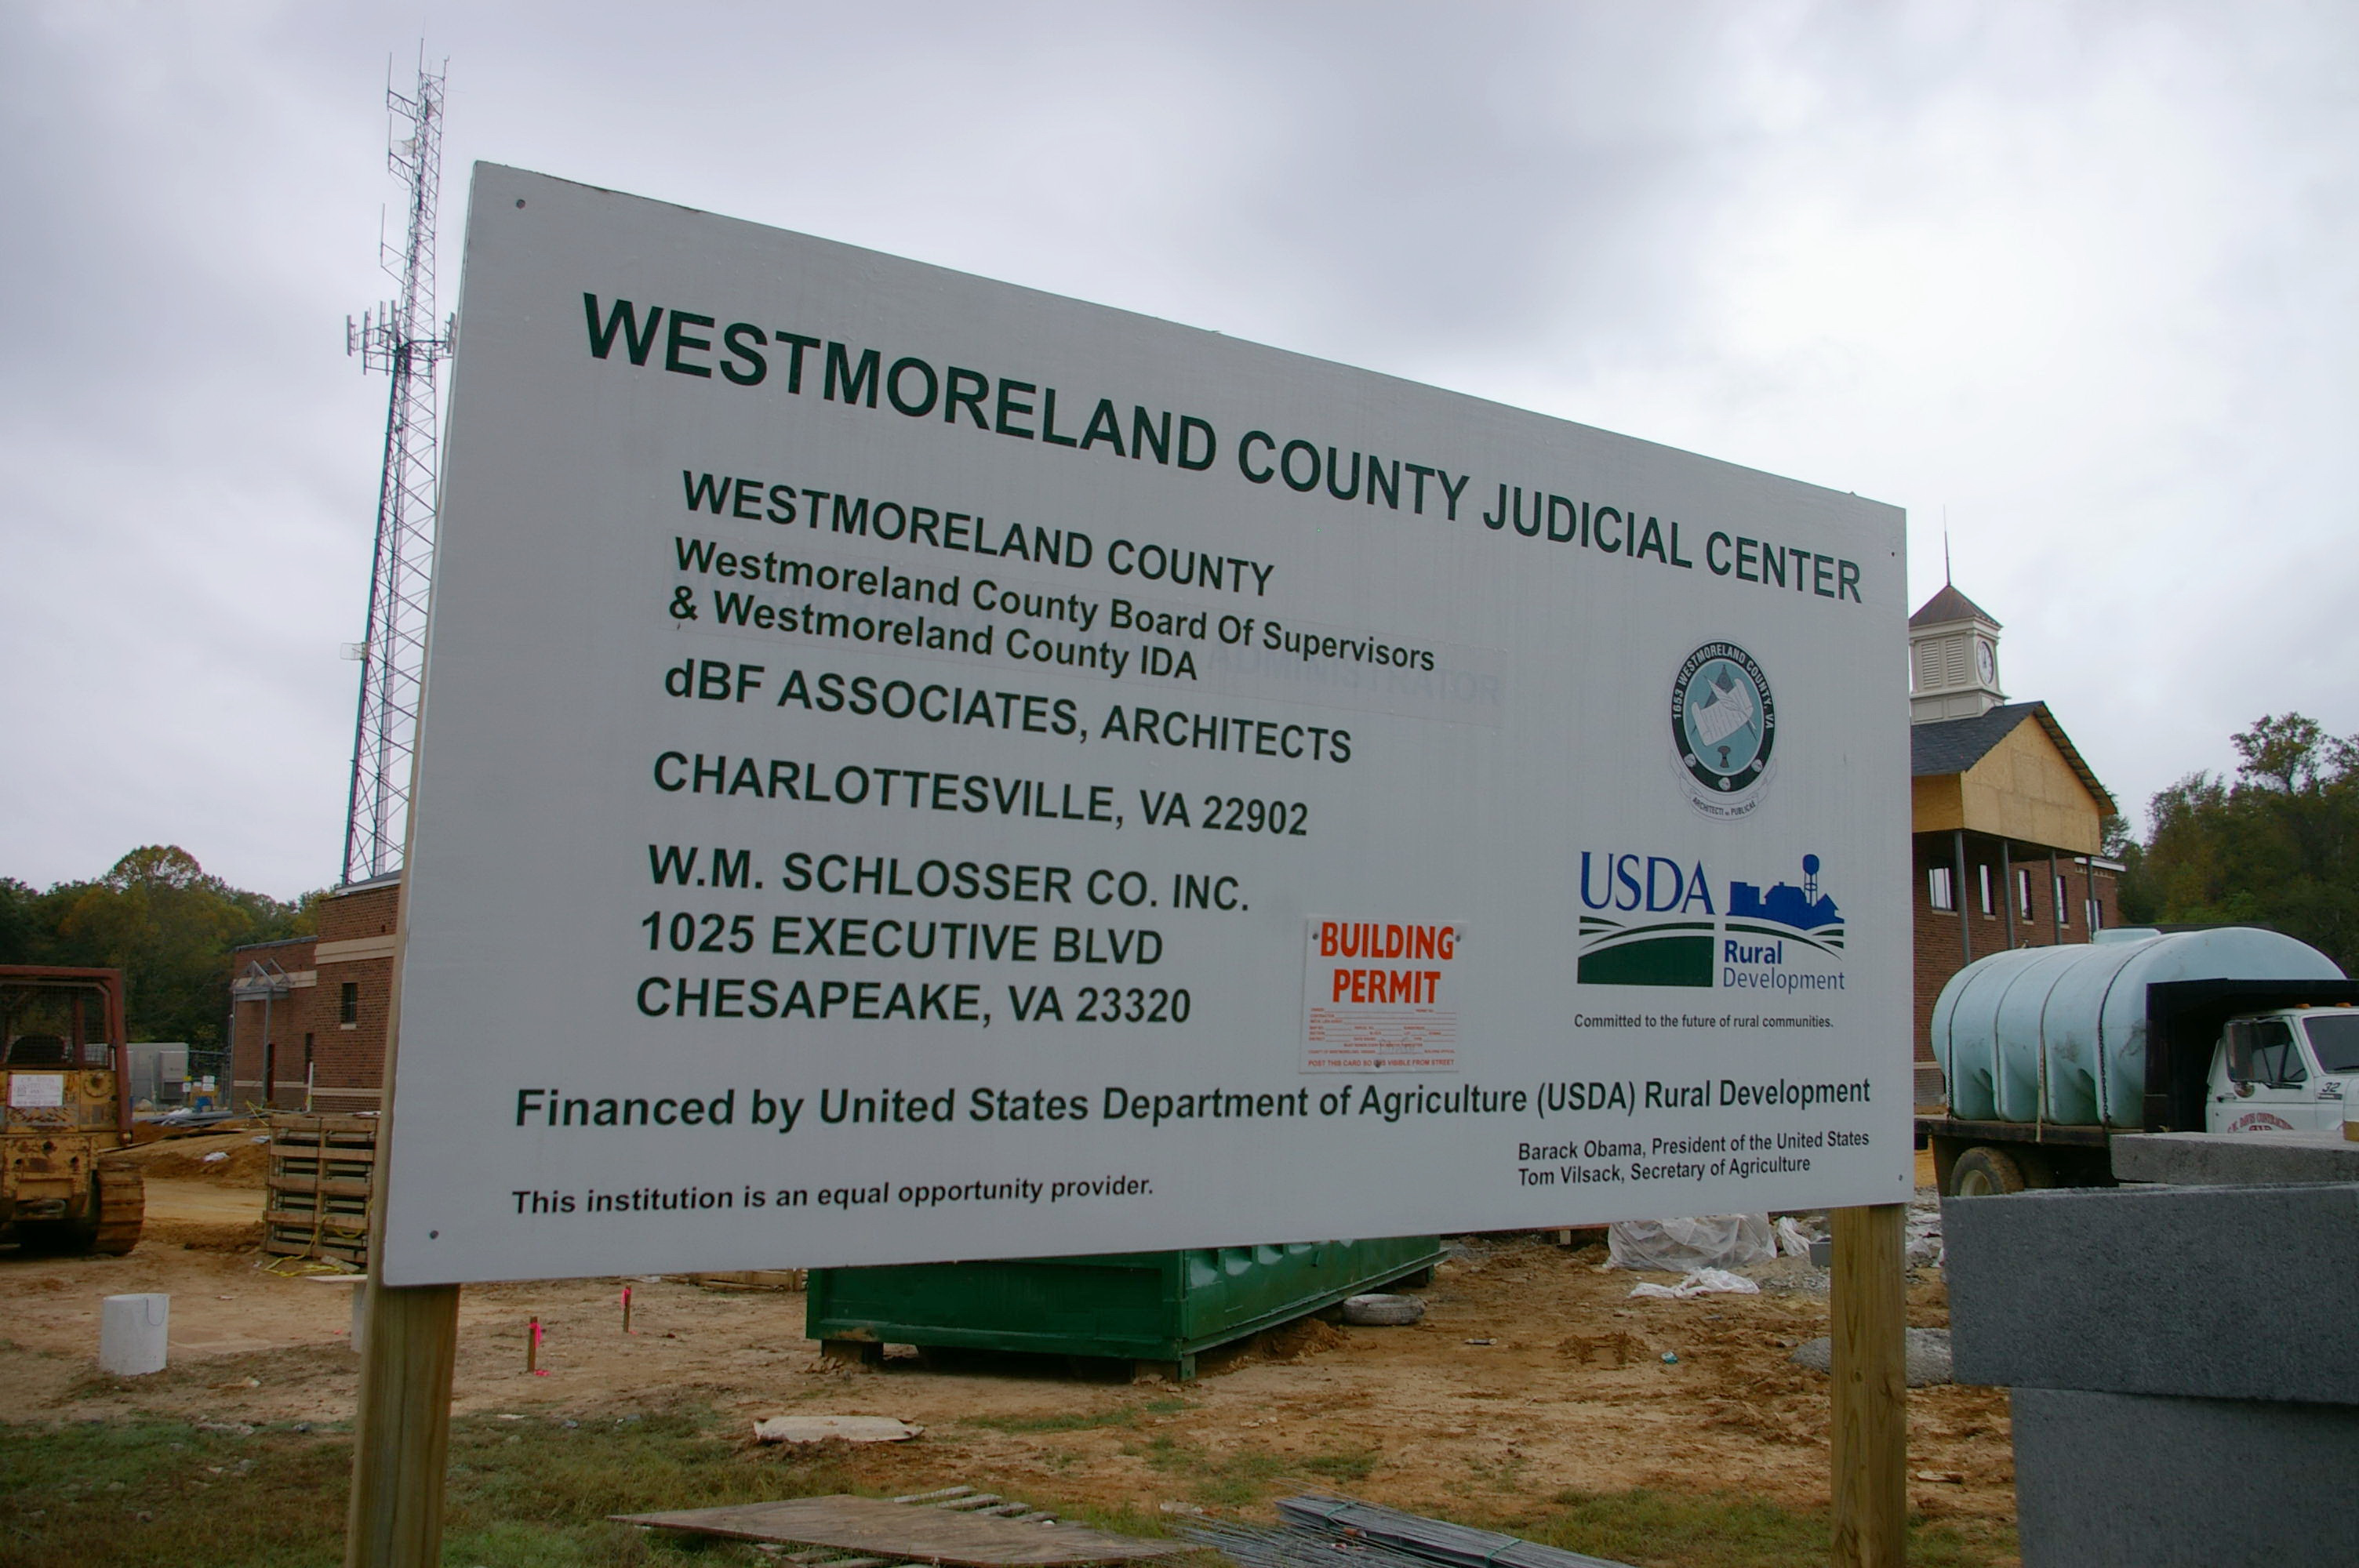 Westmoreland County | US Courthouses